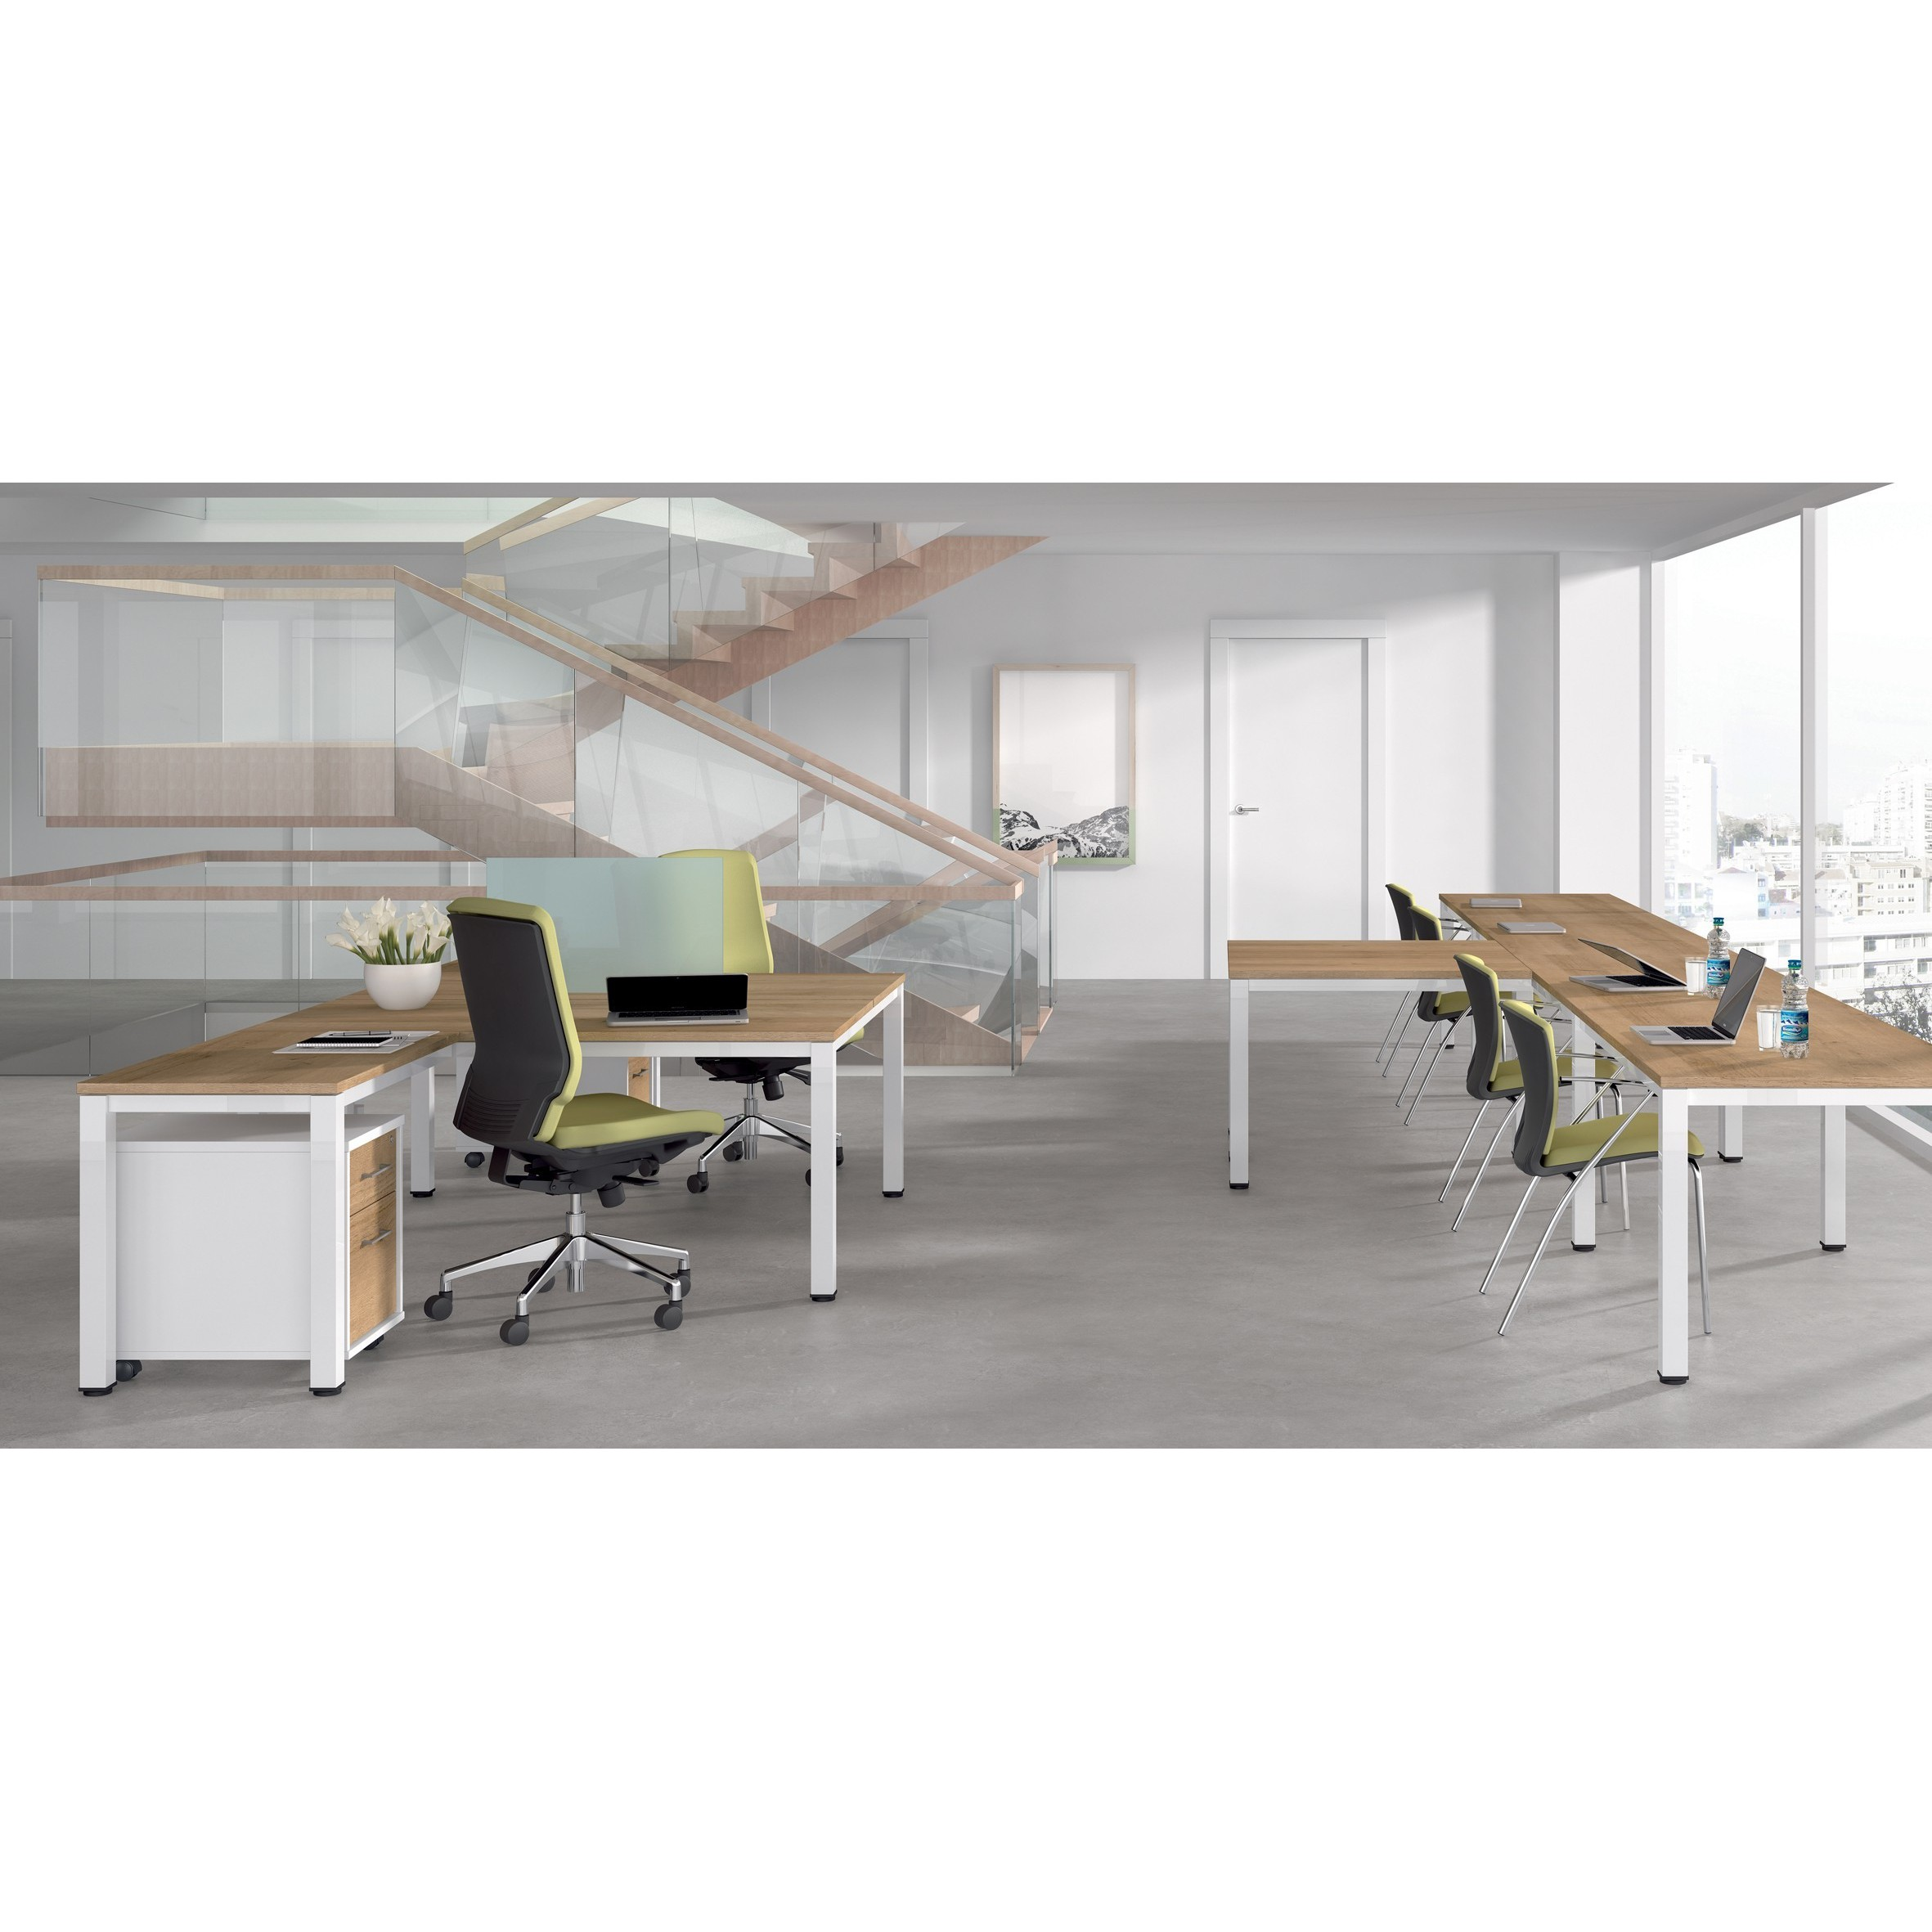 TABLE OFFICE 'S EXECUTIVE SERIES CHROME/WHITE